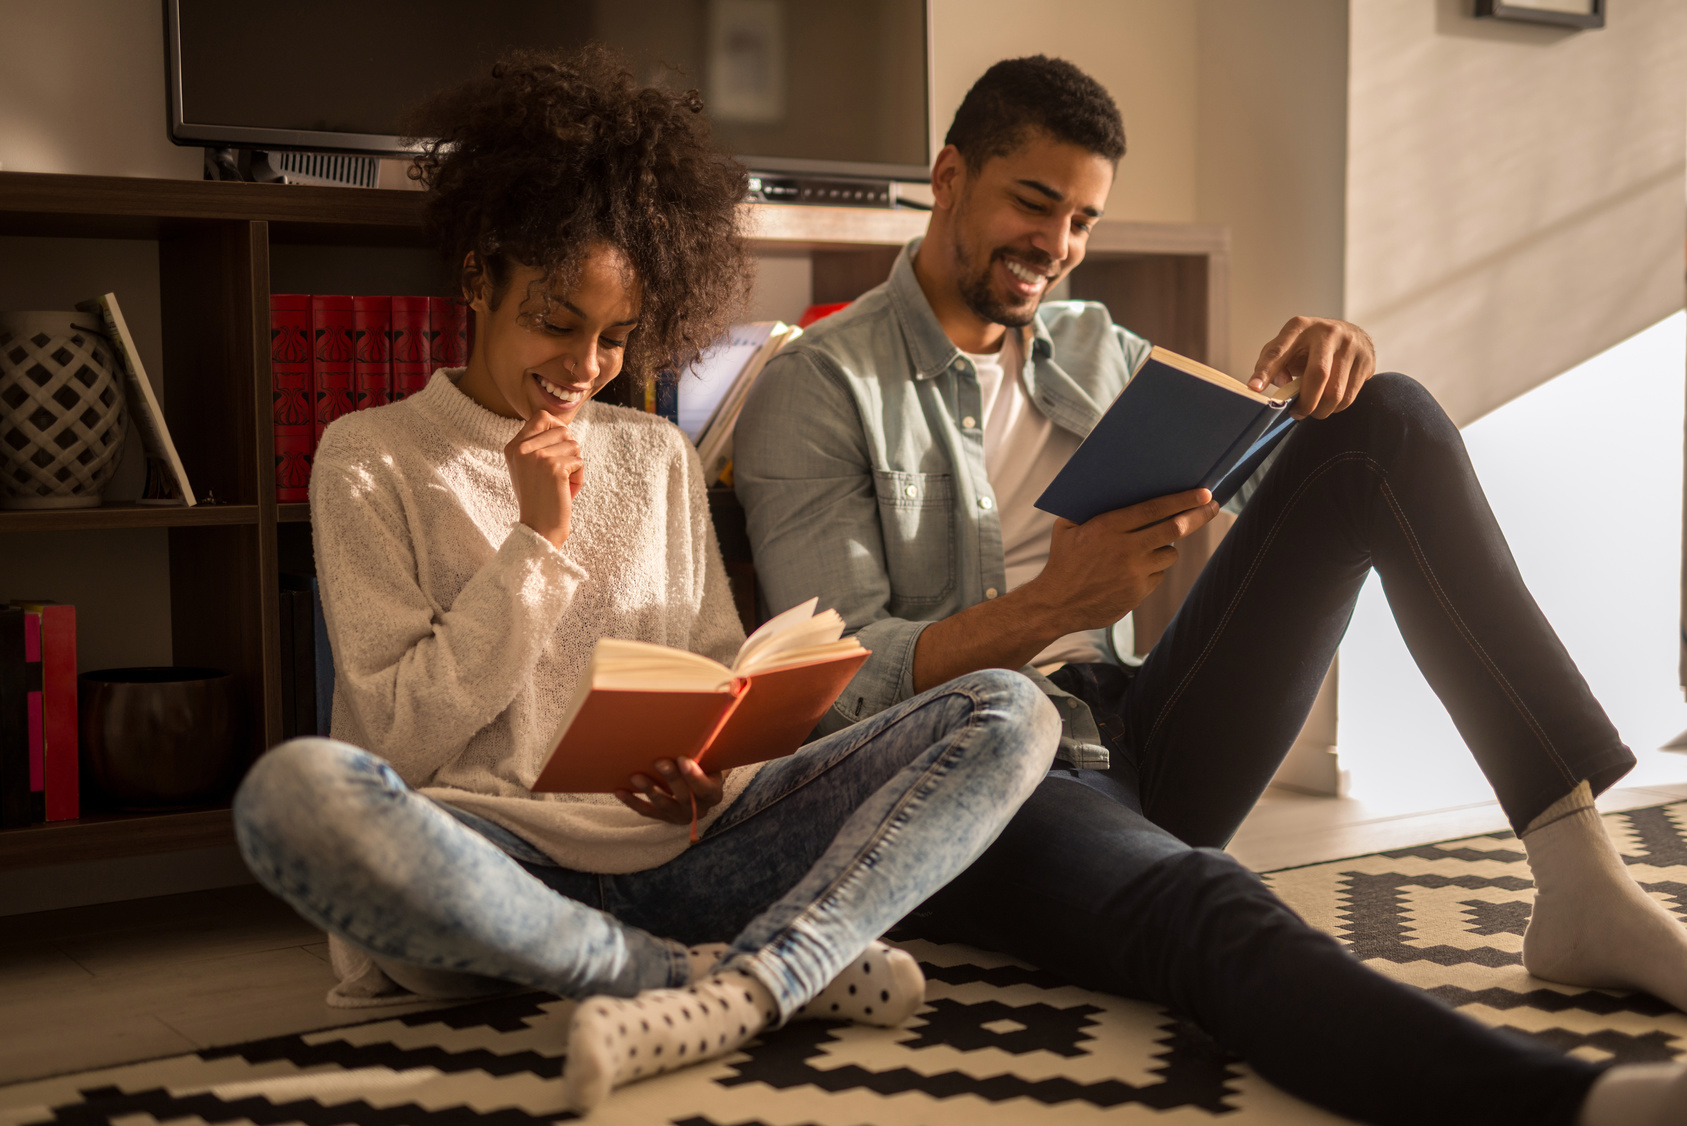 African american couple enjoying reading together at home.